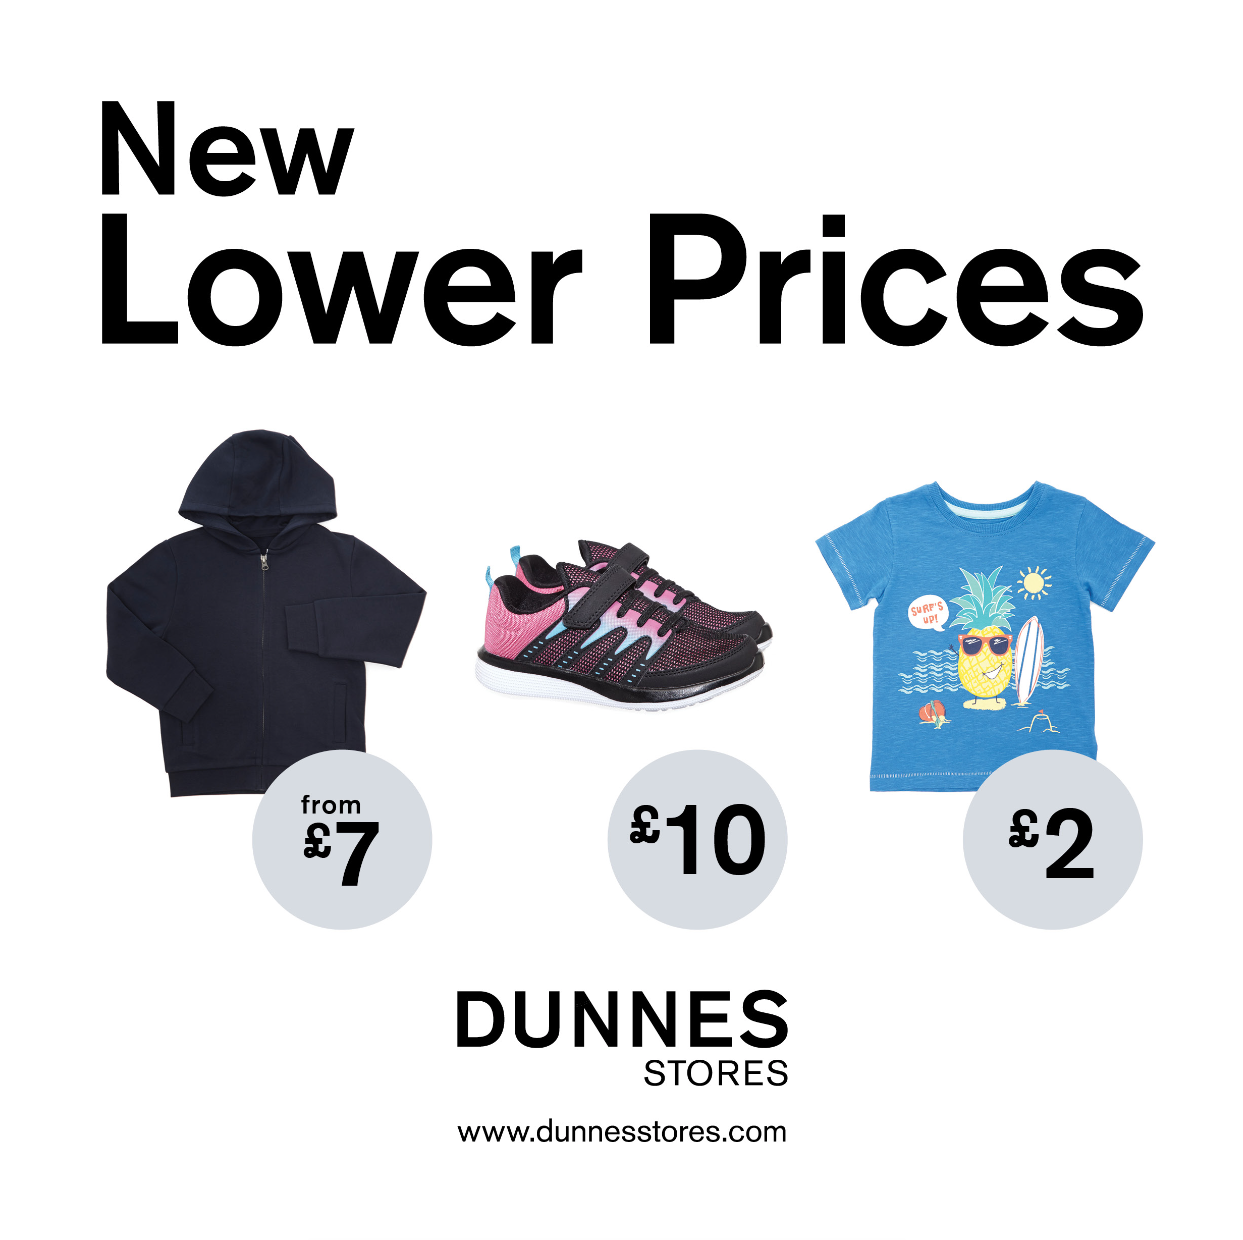 Dunnes Stores New Lower Prices across Kidswear.